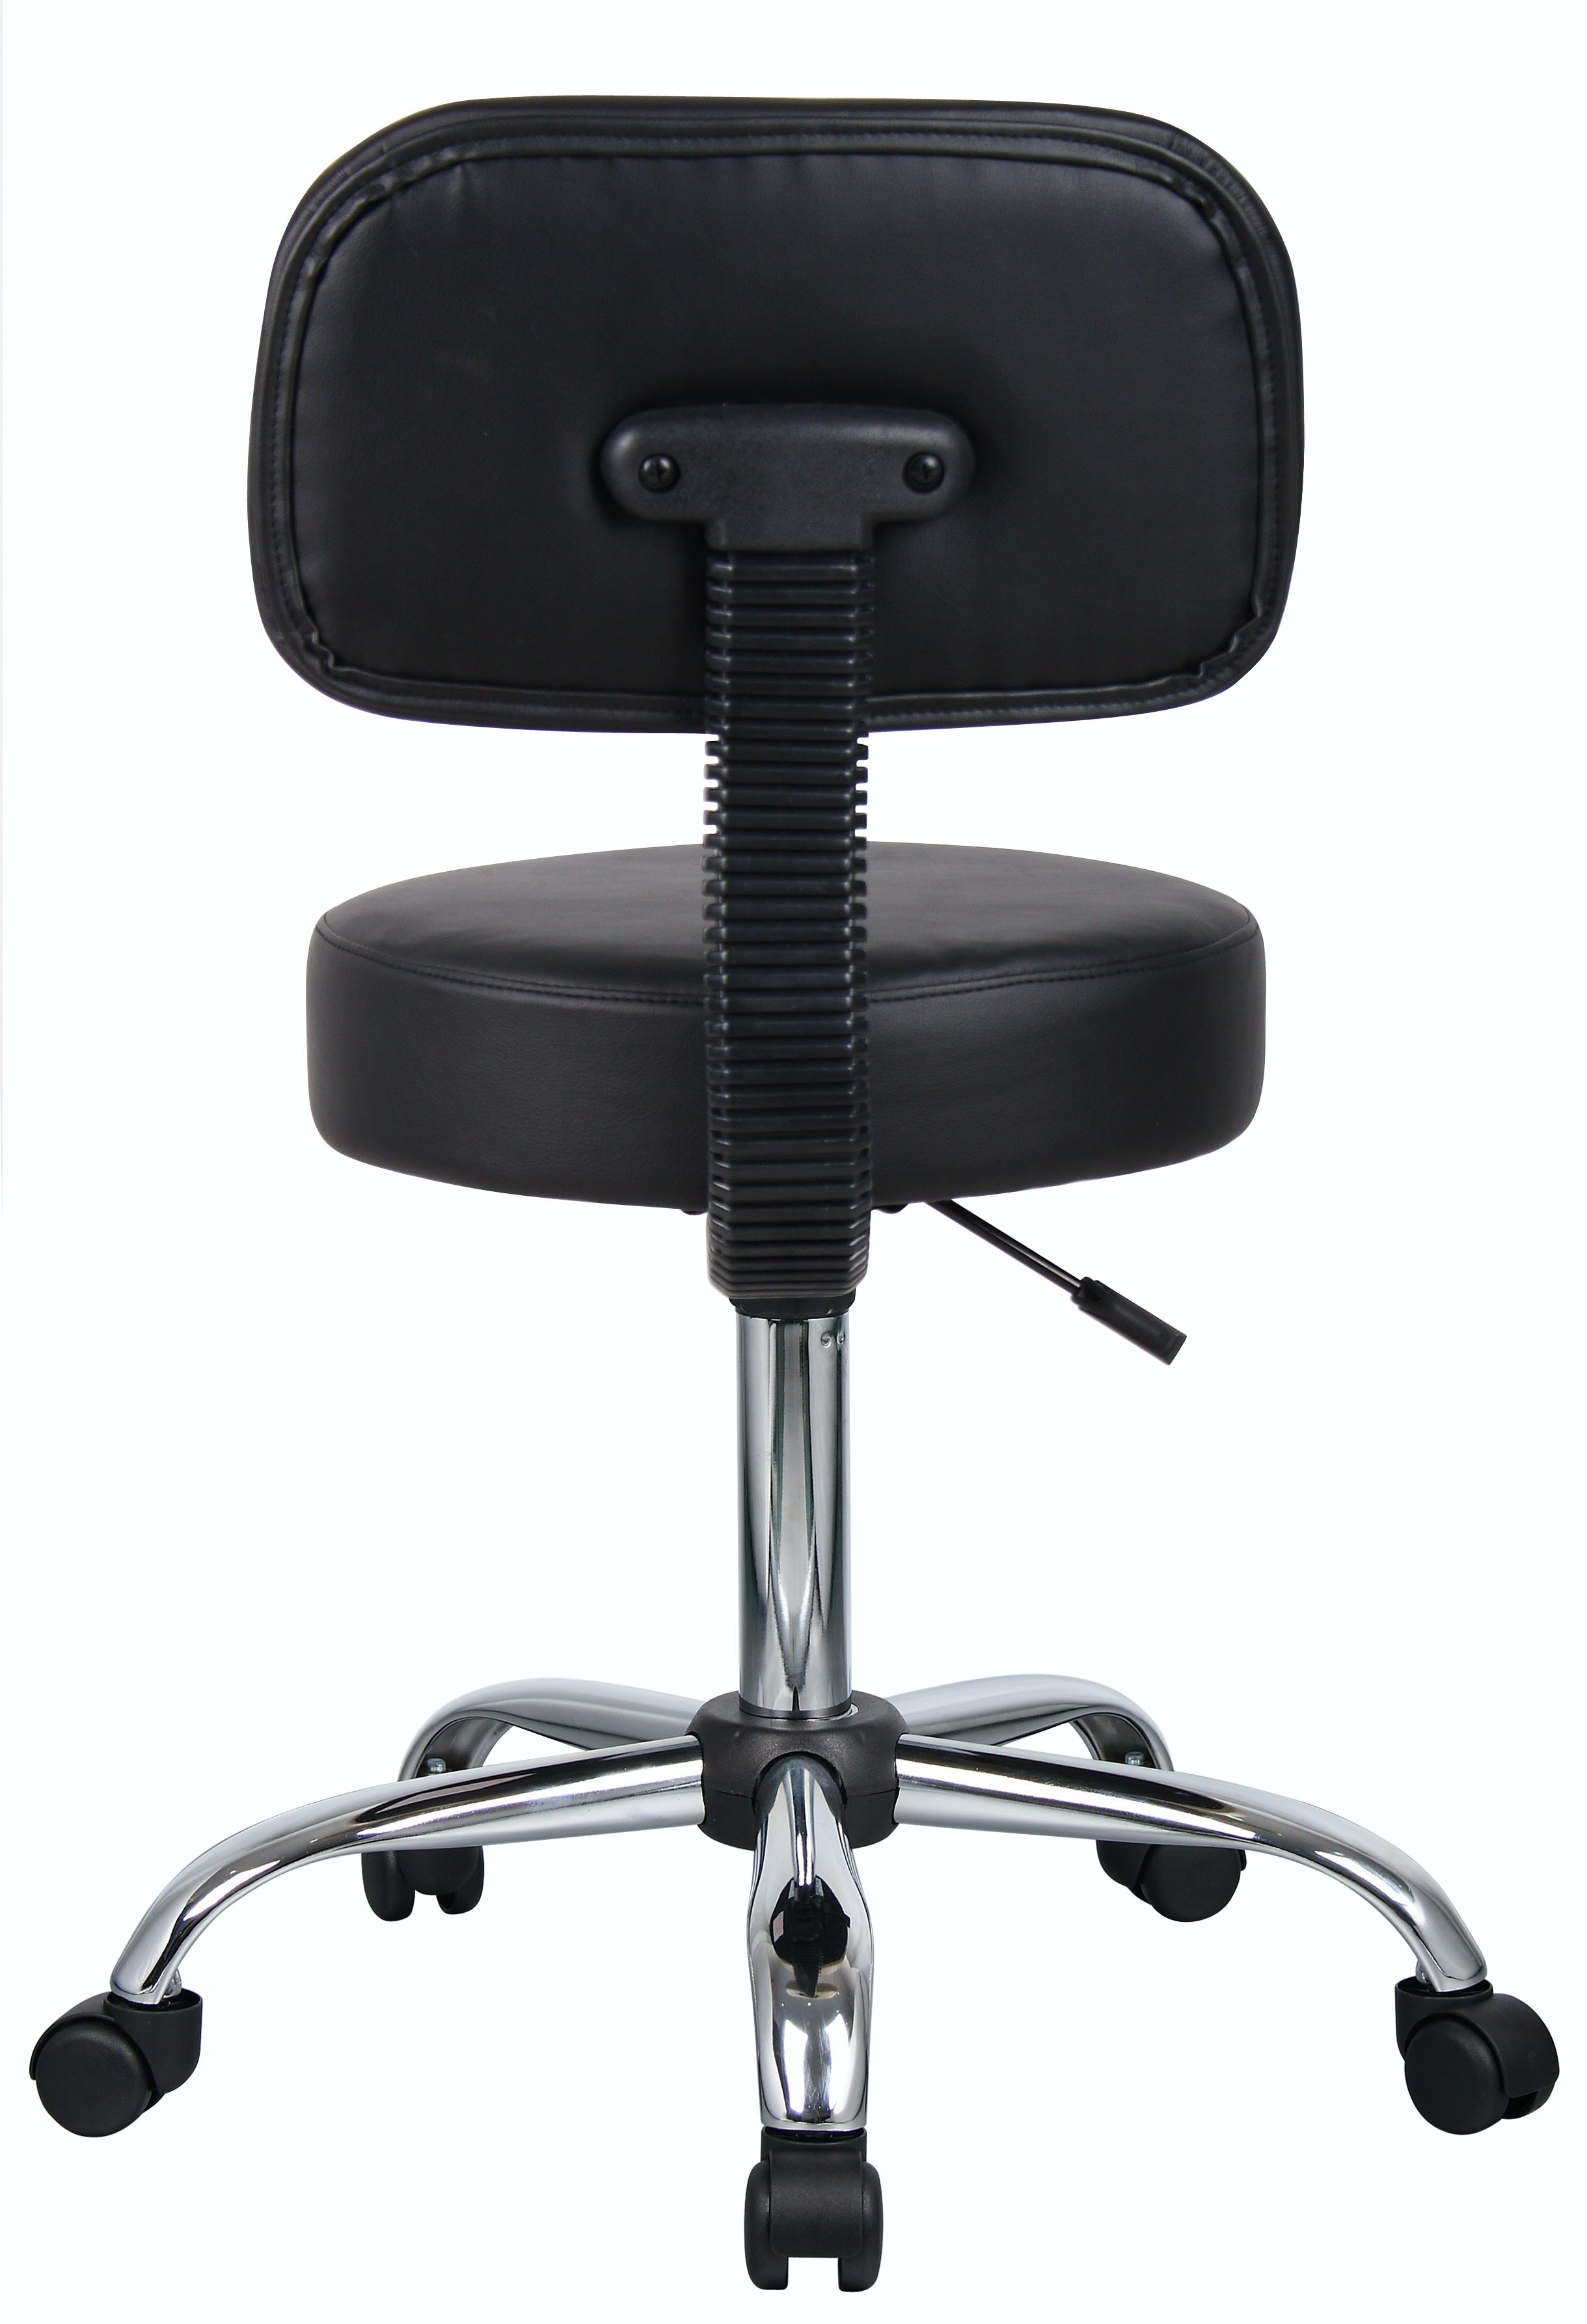 Boss Office Products Be Well Medical Spa Professional Adjustable Drafting Stool with Back and Removable Foot Rest Black